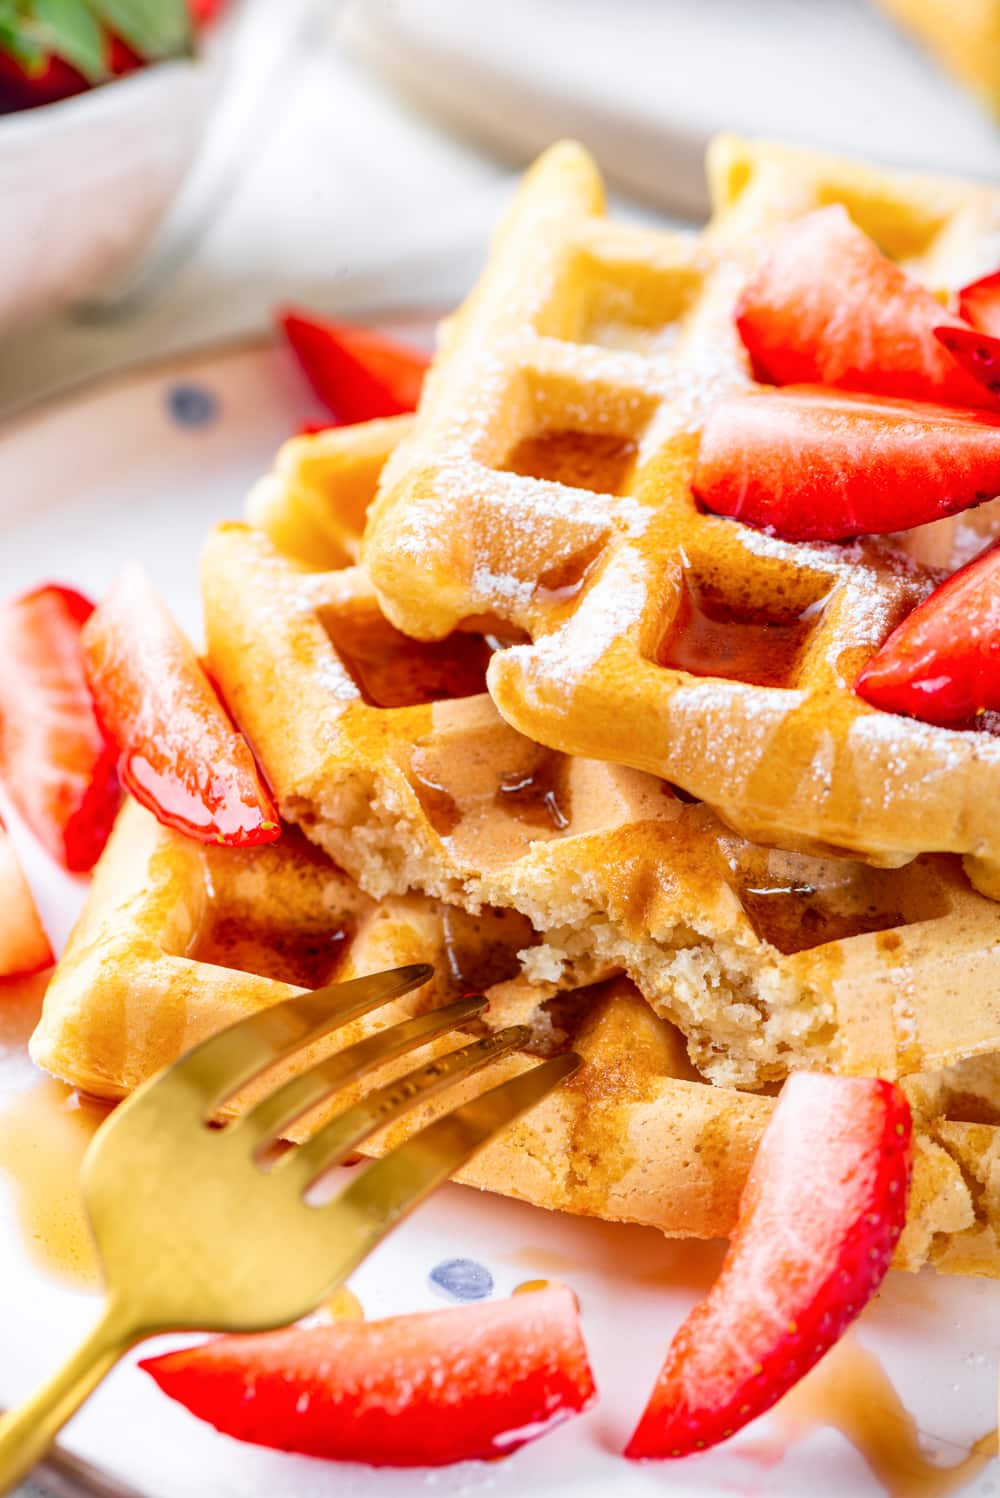 An uneven stack of three square vegan waffles with a piece cut out of the middle waffle. A gold fork is leaning against the bottom waffle and cut up strawberries and maple syrup is on the waffles.